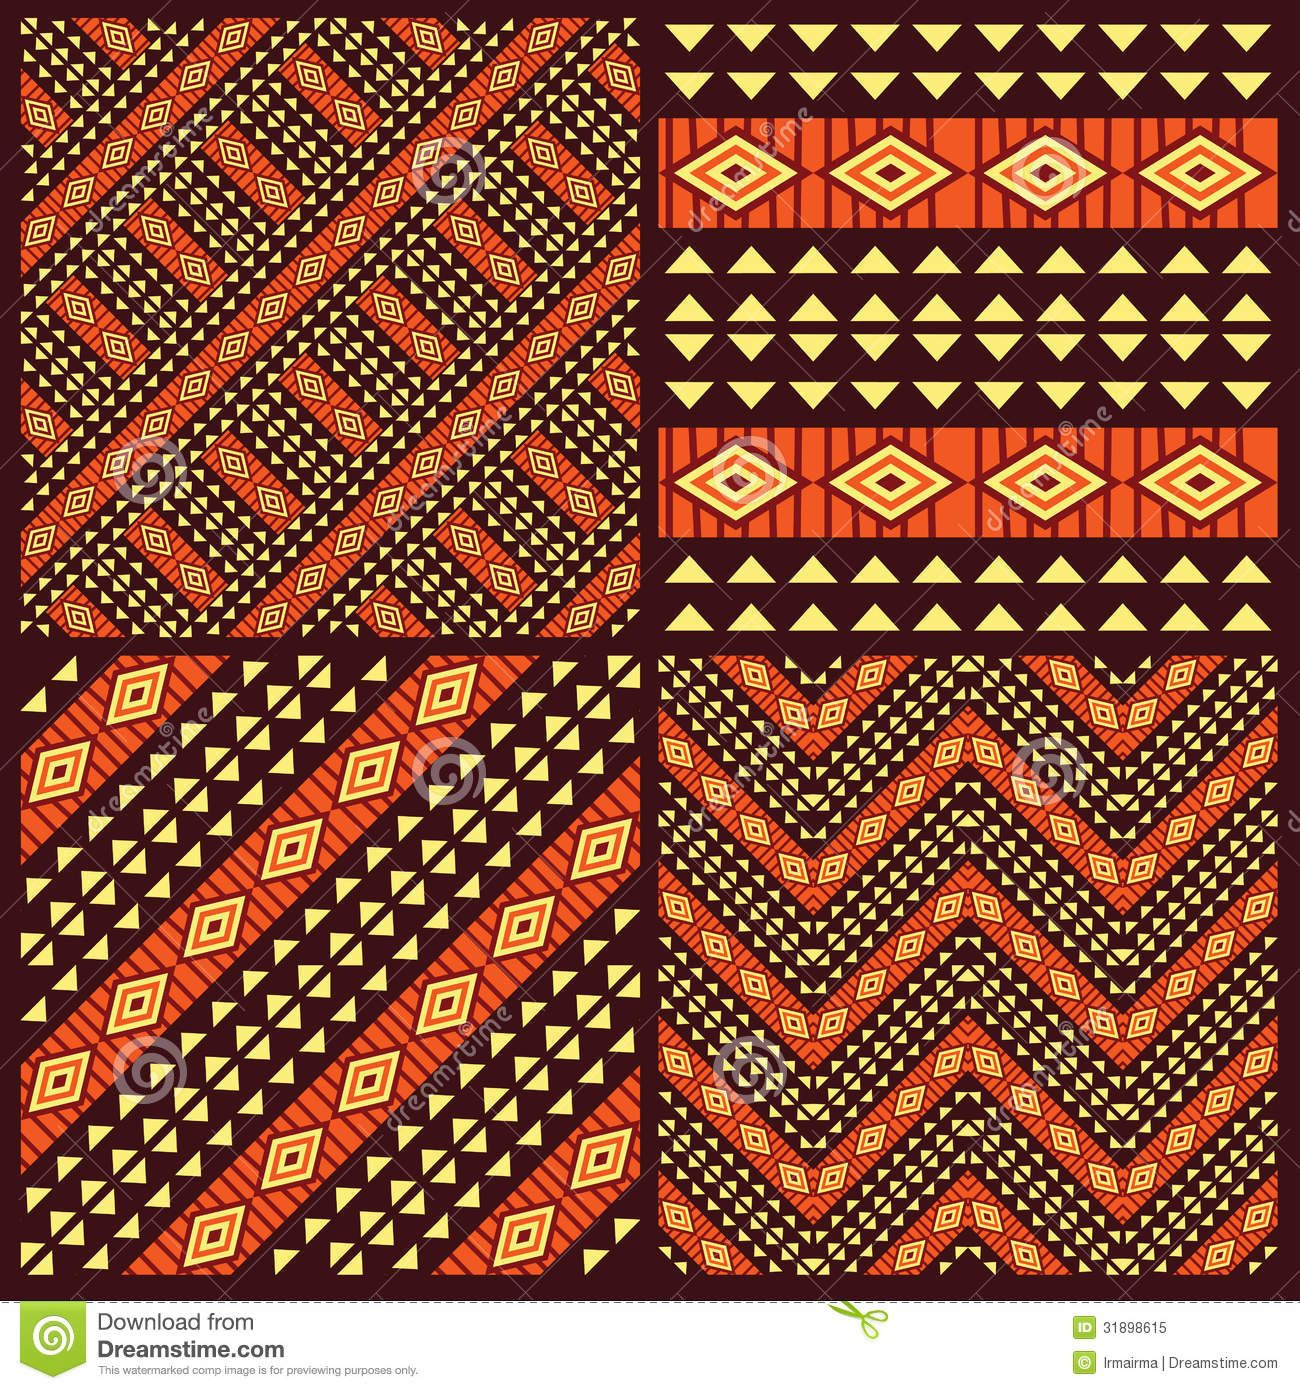 African Tribal Designs Patterns | African Prints | Pinterest | Tribal ... African Designs And Patterns